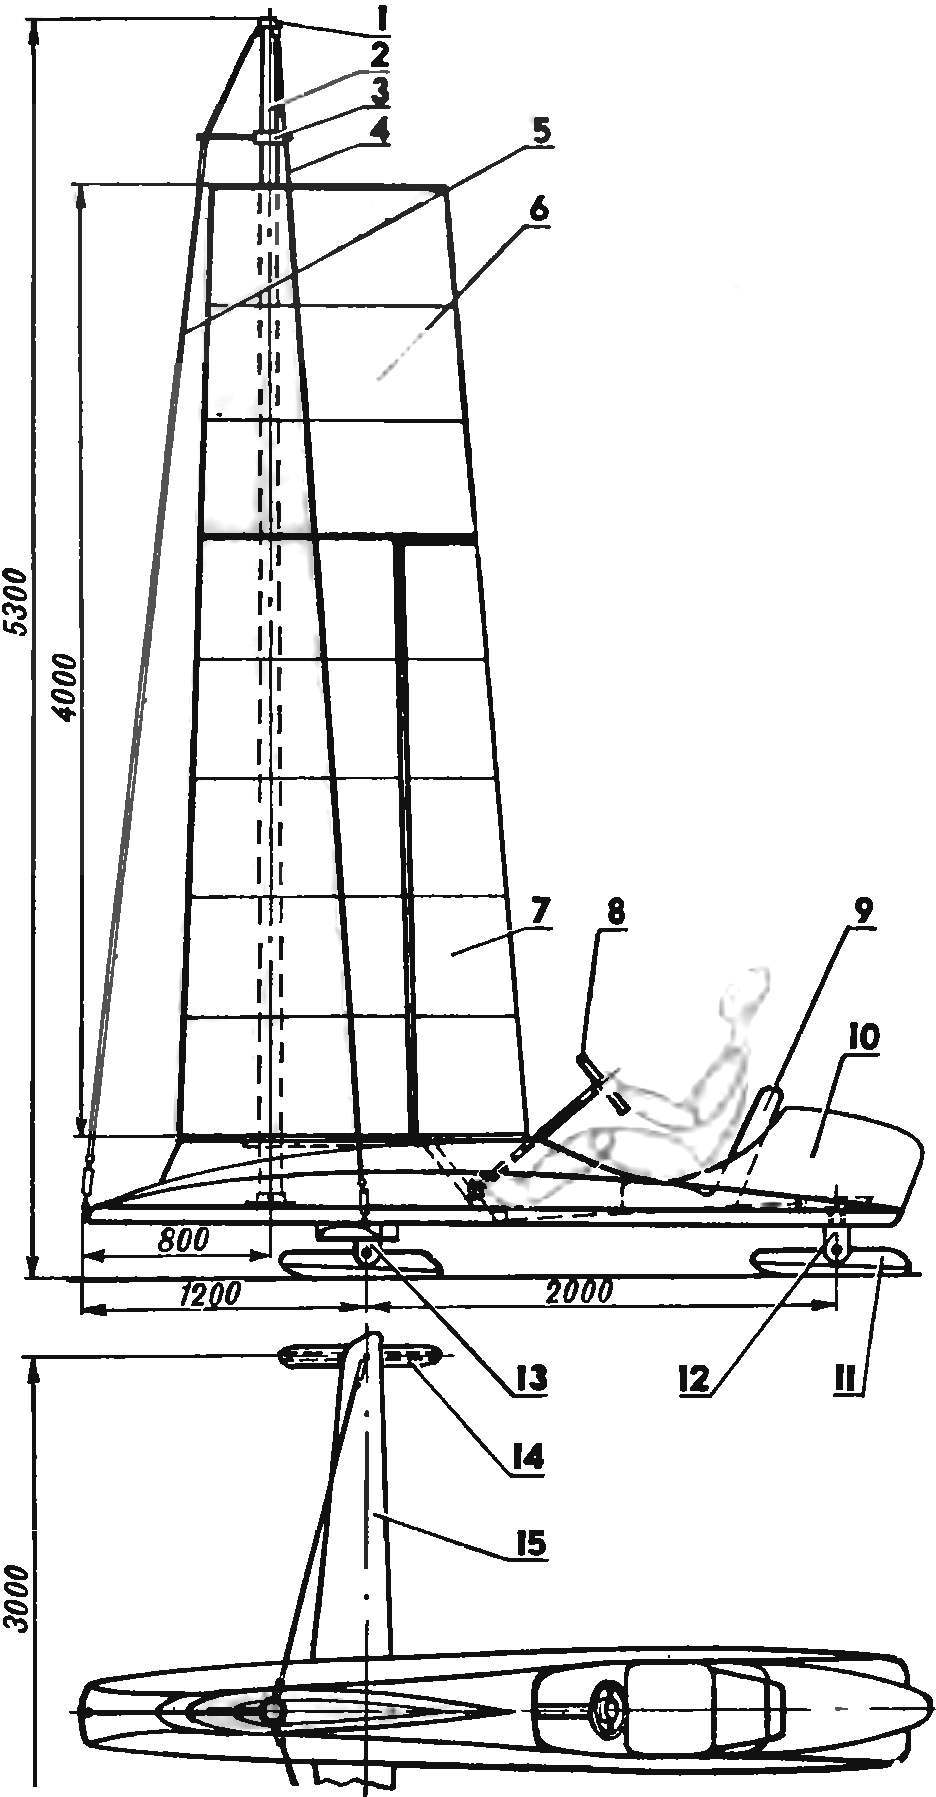 Buer with mechanized sail-wing/